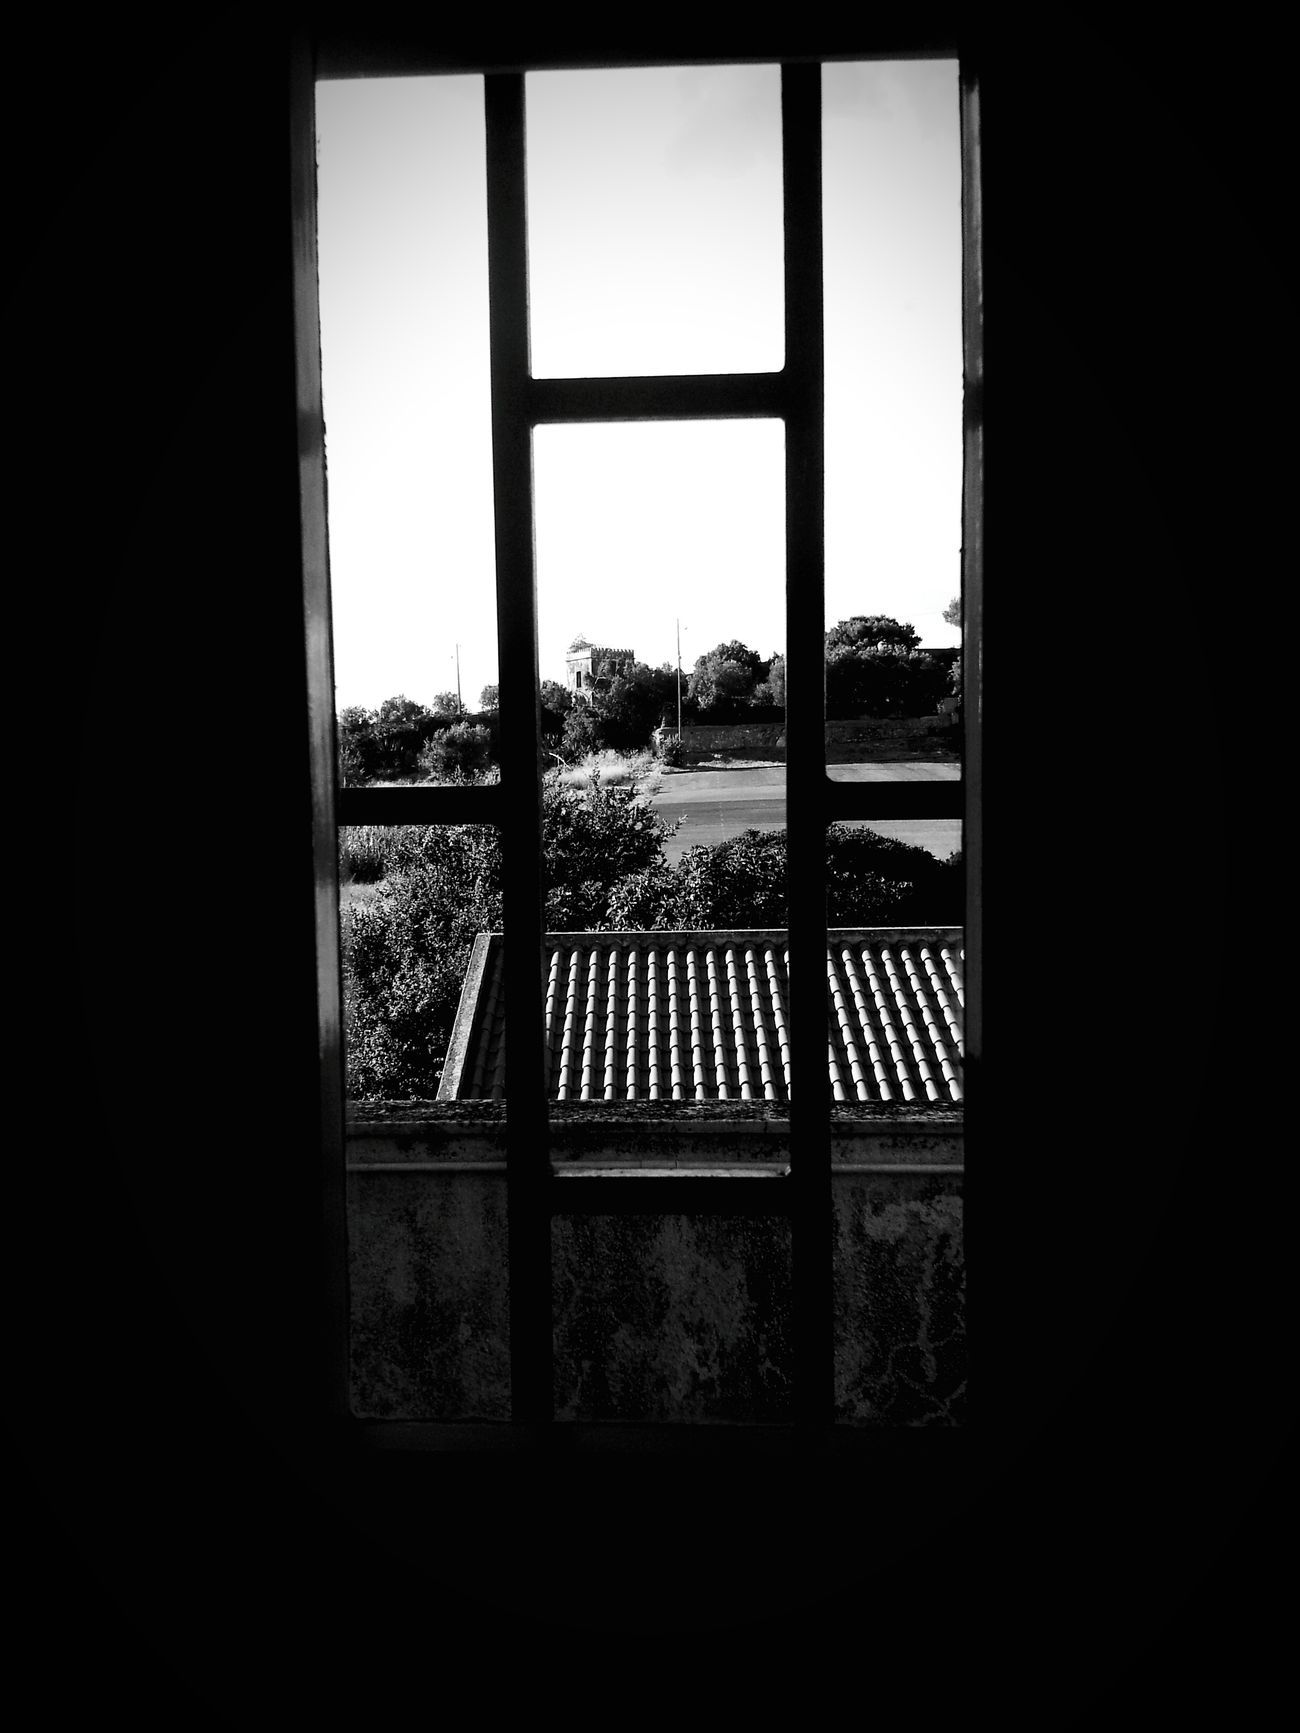 behind bars Blackandwhite EyeEm The Sky Gone Out